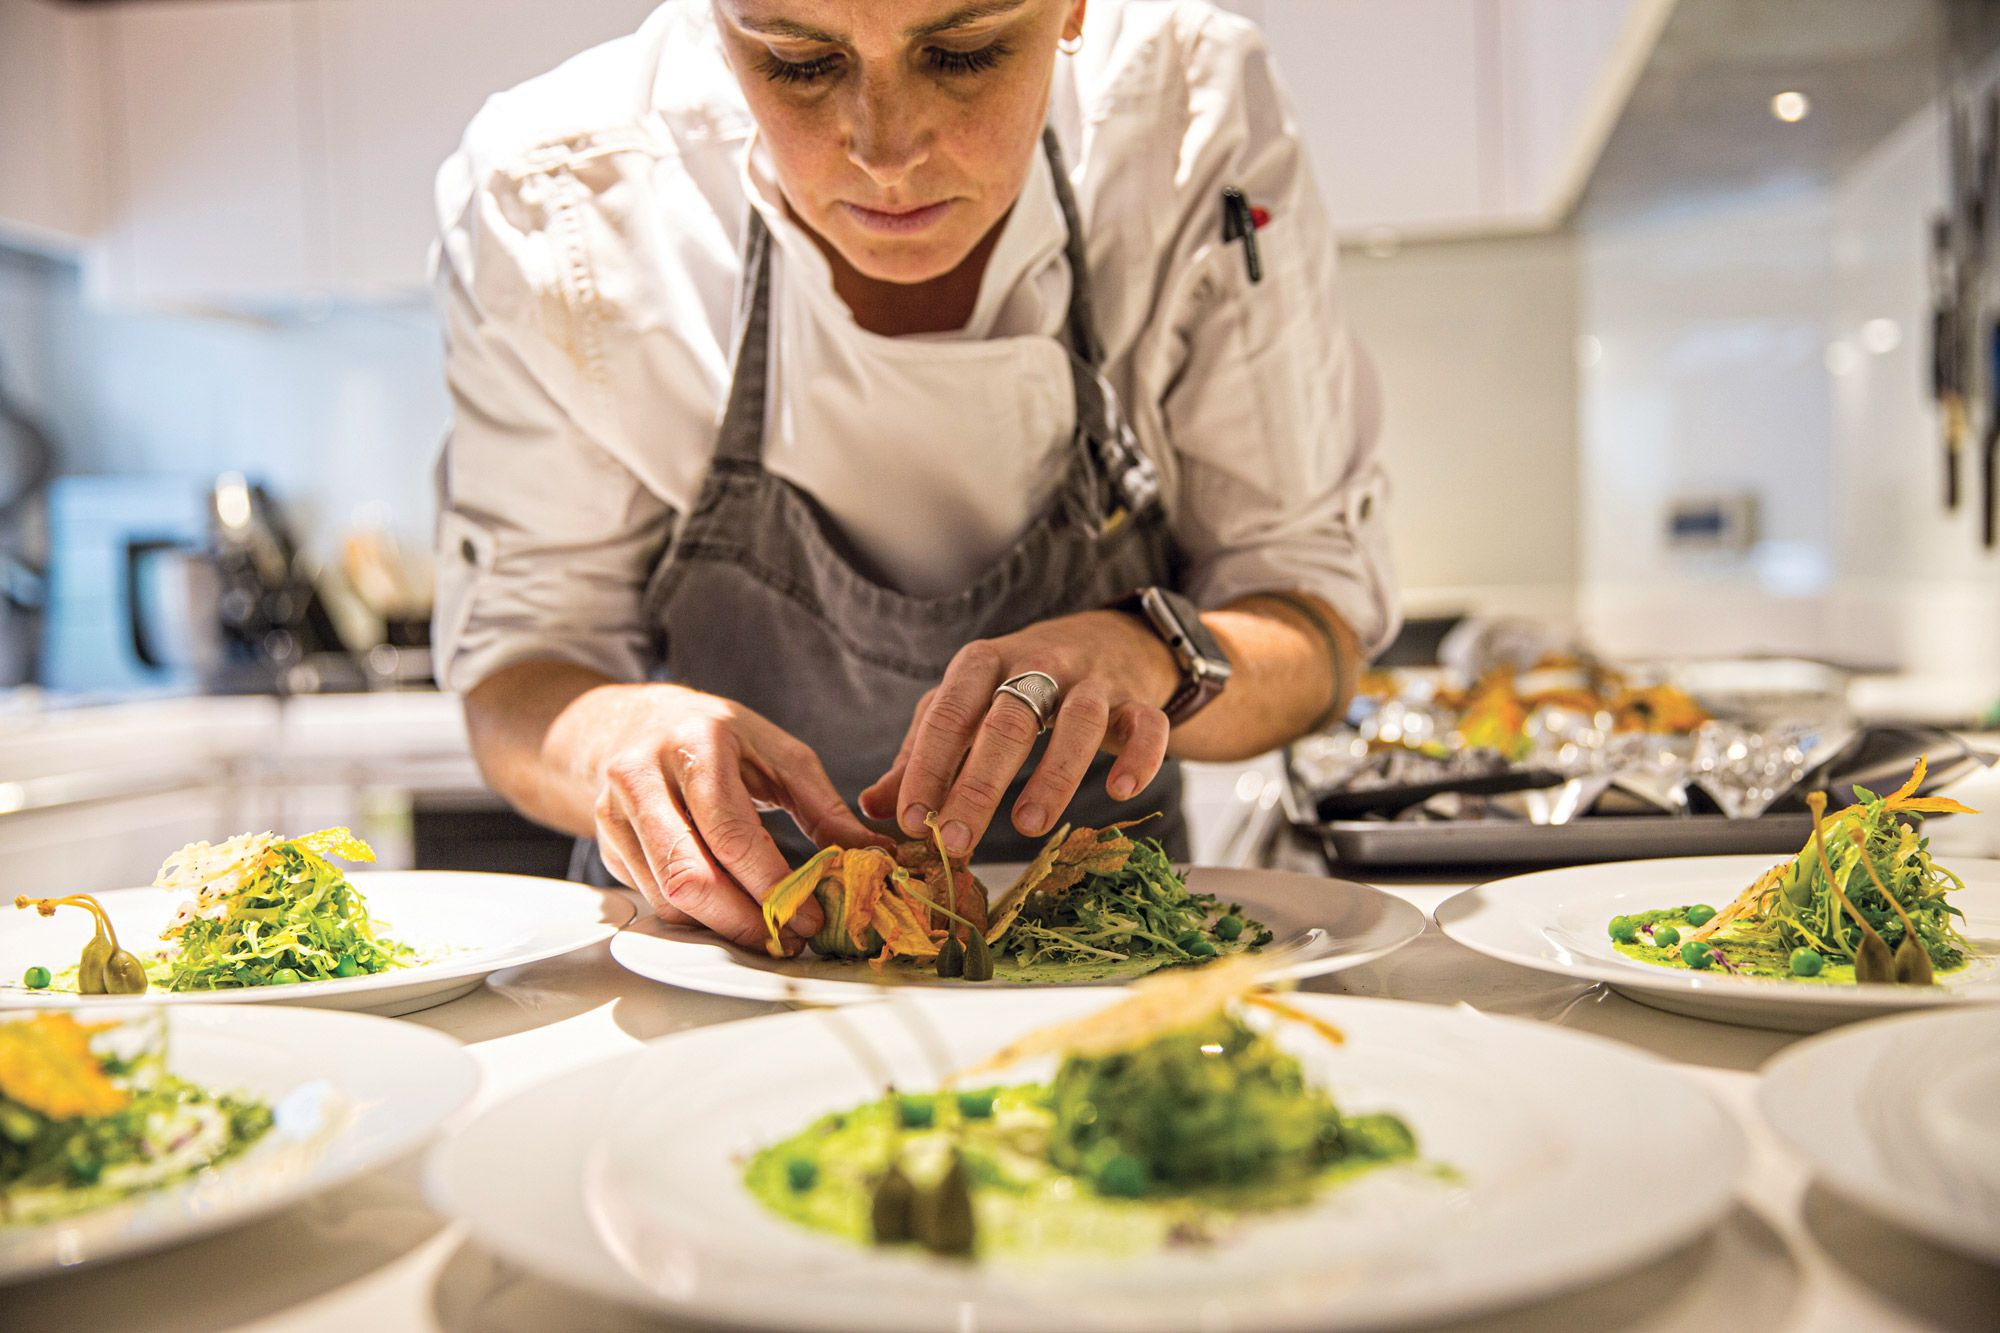 For clients seeking Michelin-level dining on board, Armstrong and Hornsby can discuss not only which superyachts have highly trained chefs in the galley, but also those chefs' various specialties.